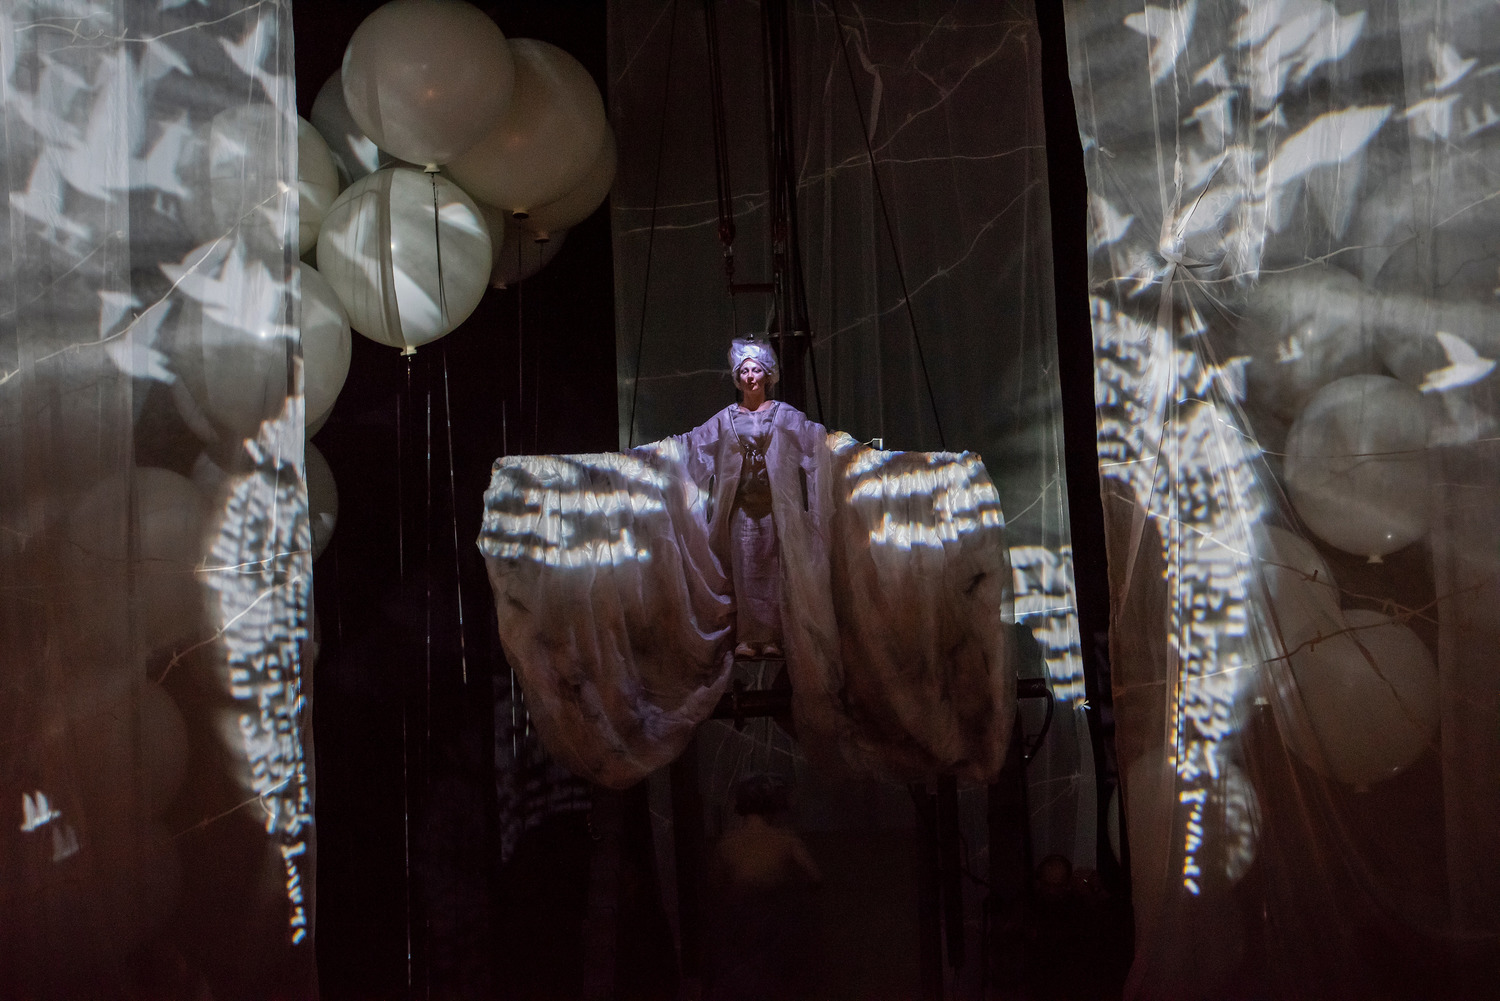 BWW Review: Haydn's CREATION with La Fura dels Baus at Mostly Mozart--I'd date it but I'm not ready to marry it